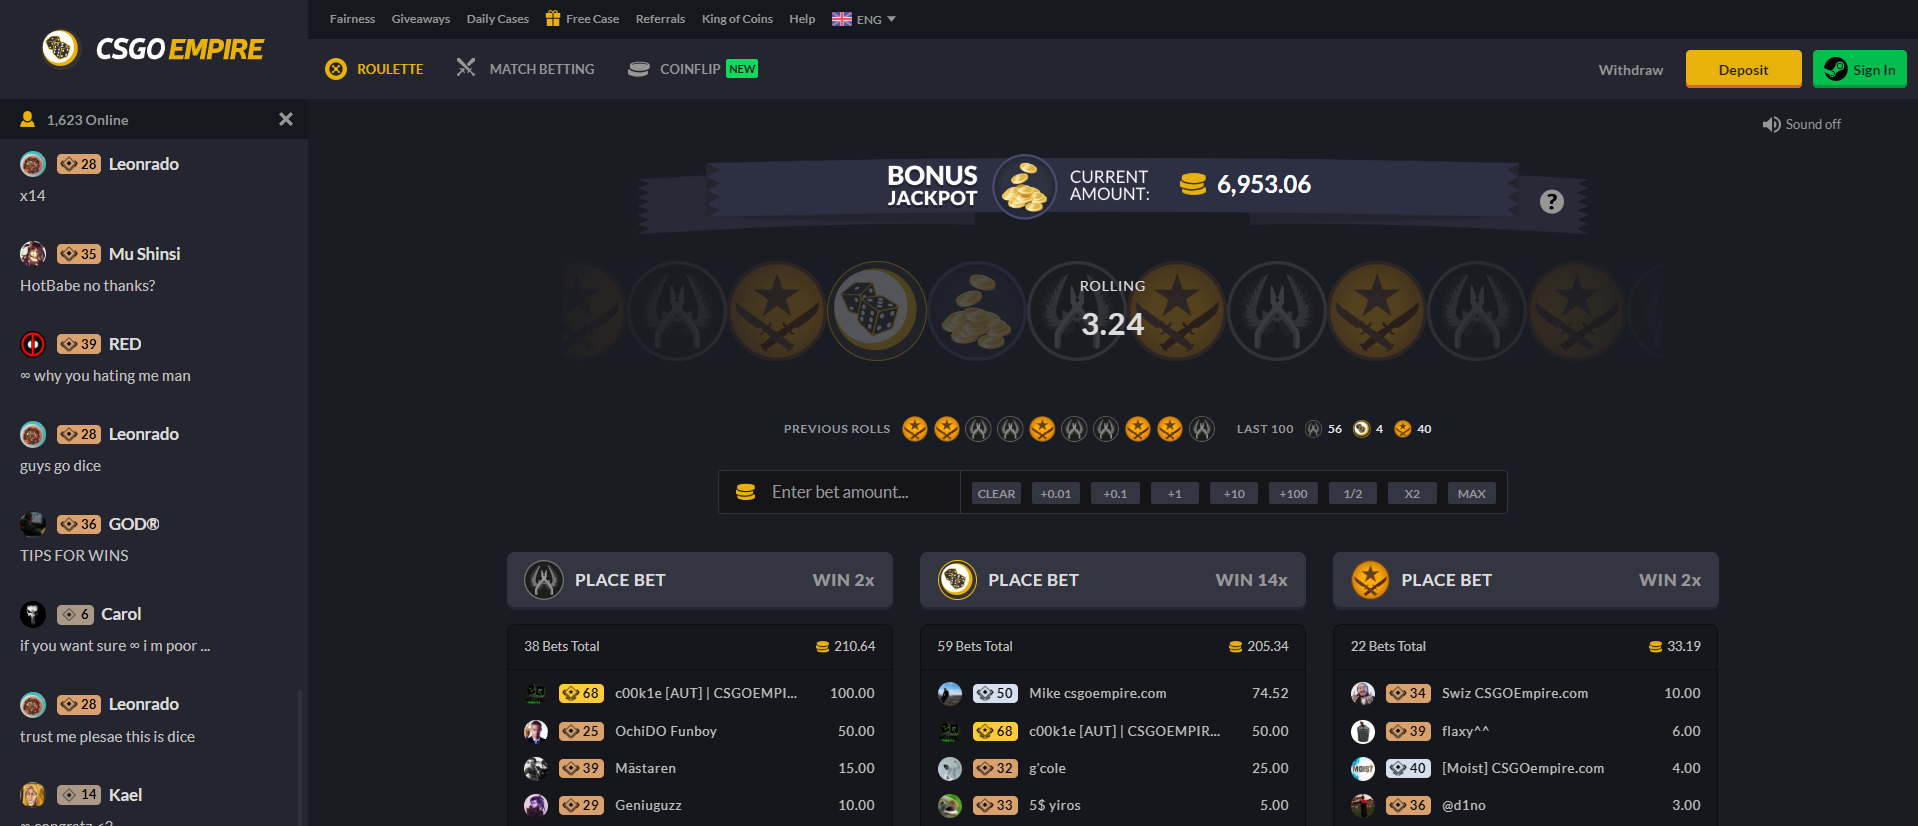 csgo upgrade sites with free coins